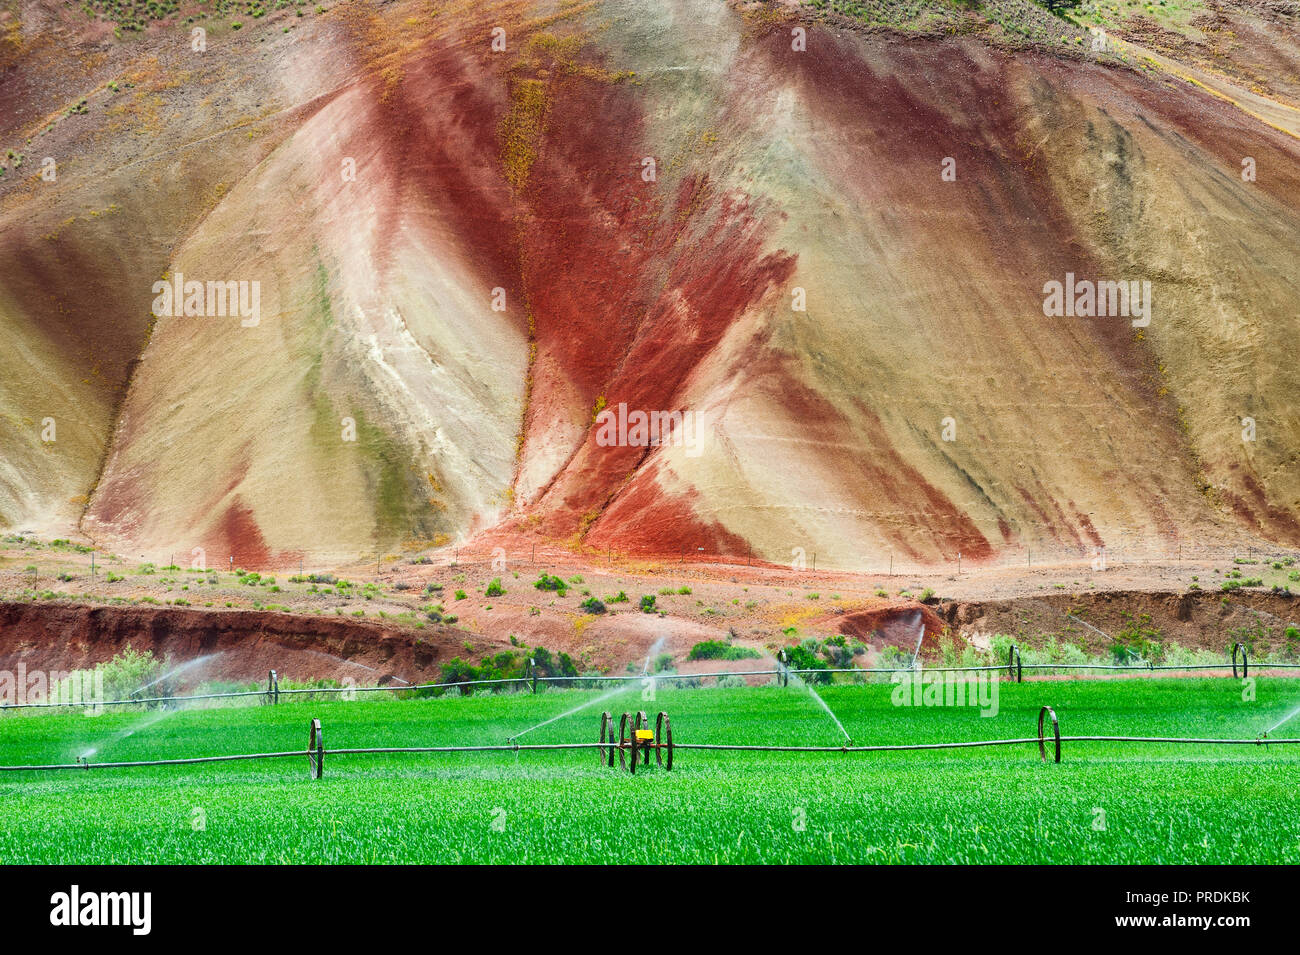 Agriculture field being irrigated at the base of a painted hill, one of  many geological features in the John Day Fossil Beds National Park - Stock Image